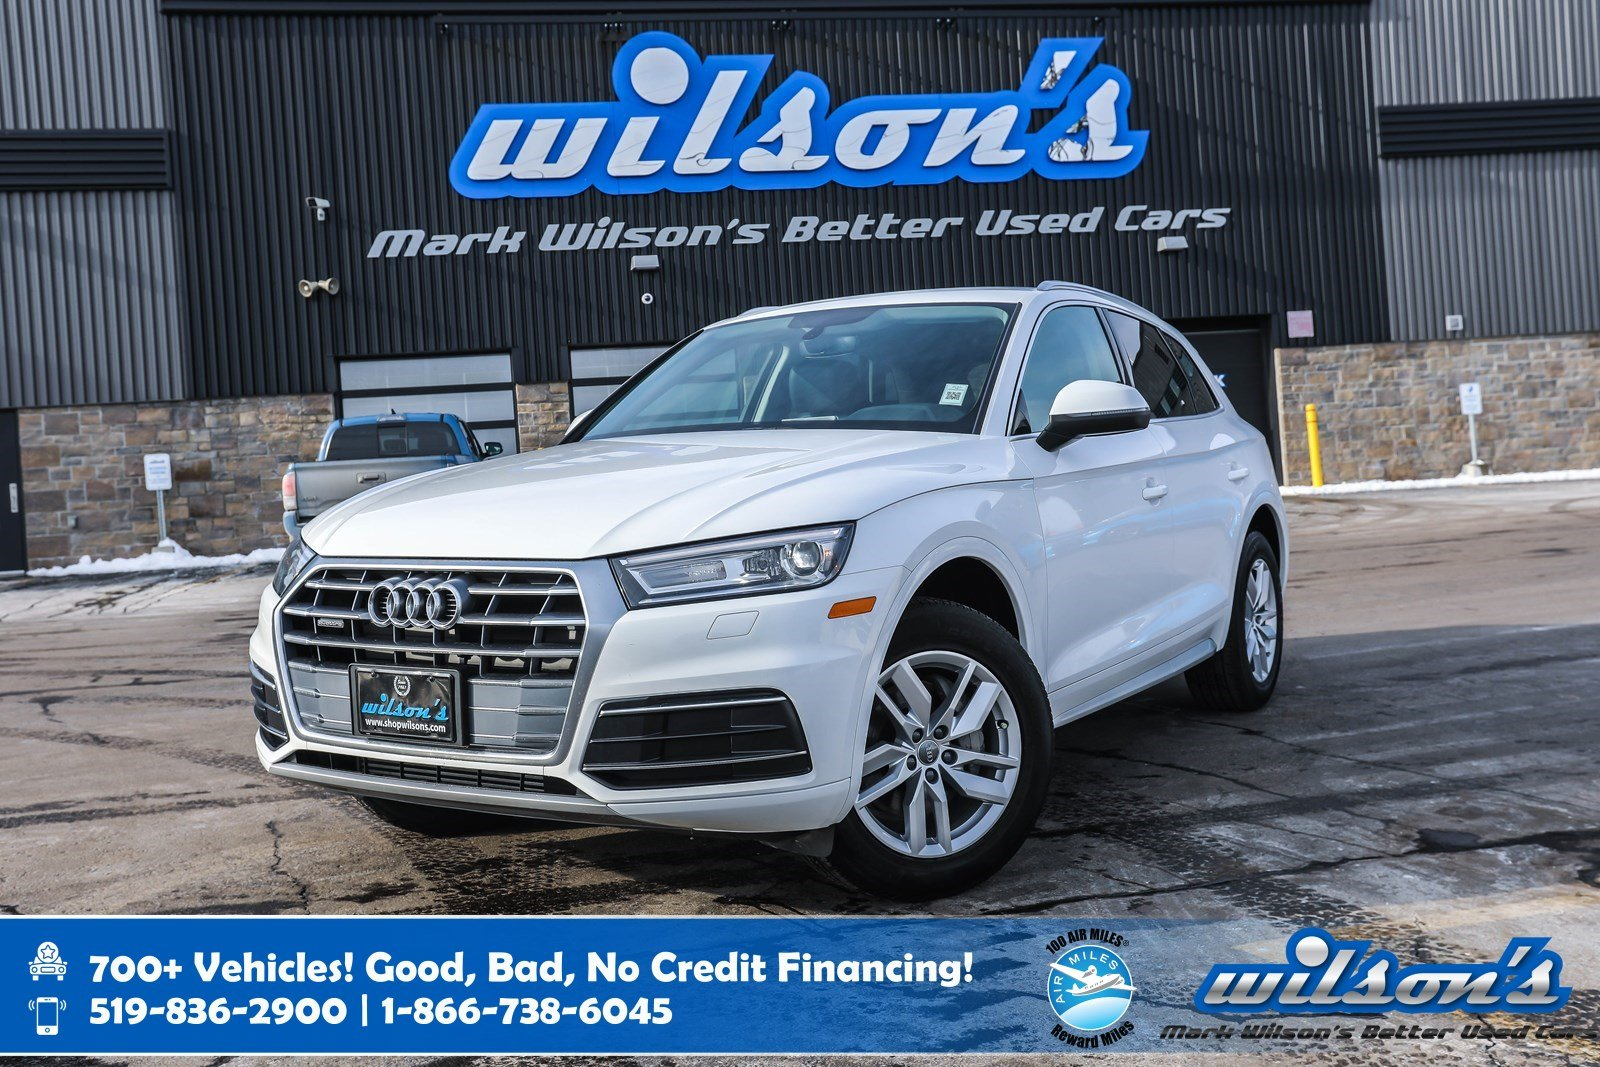 Certified Pre-Owned 2018 Audi Q5 Komfort AWD, Leather, Navigation, Heated Seats, Power Seat + Liftgate, 10 Speaker Audio & More!